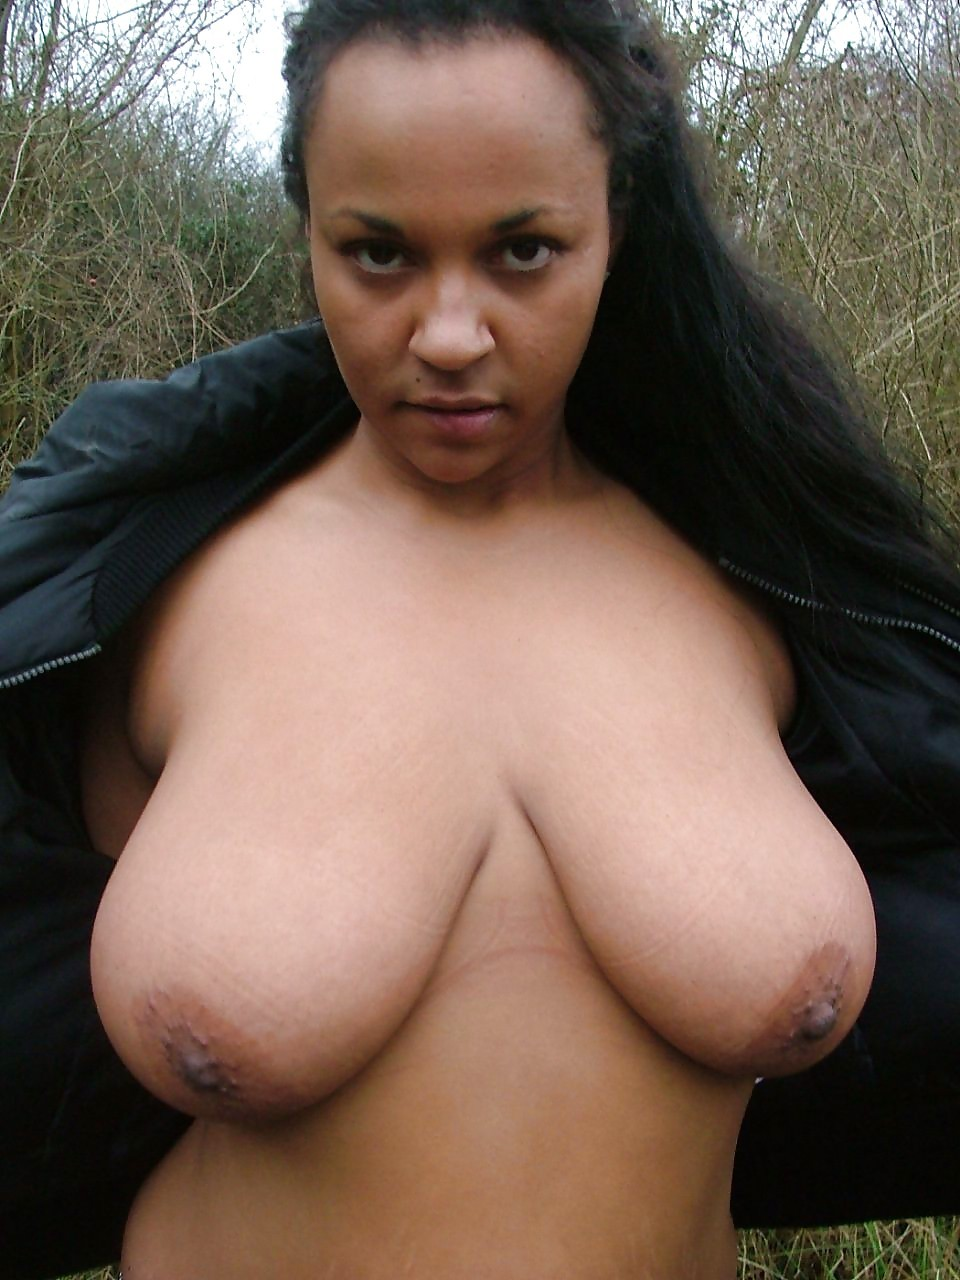 nude-asian-puffy-african-black-nipples-pool-naked-sexy